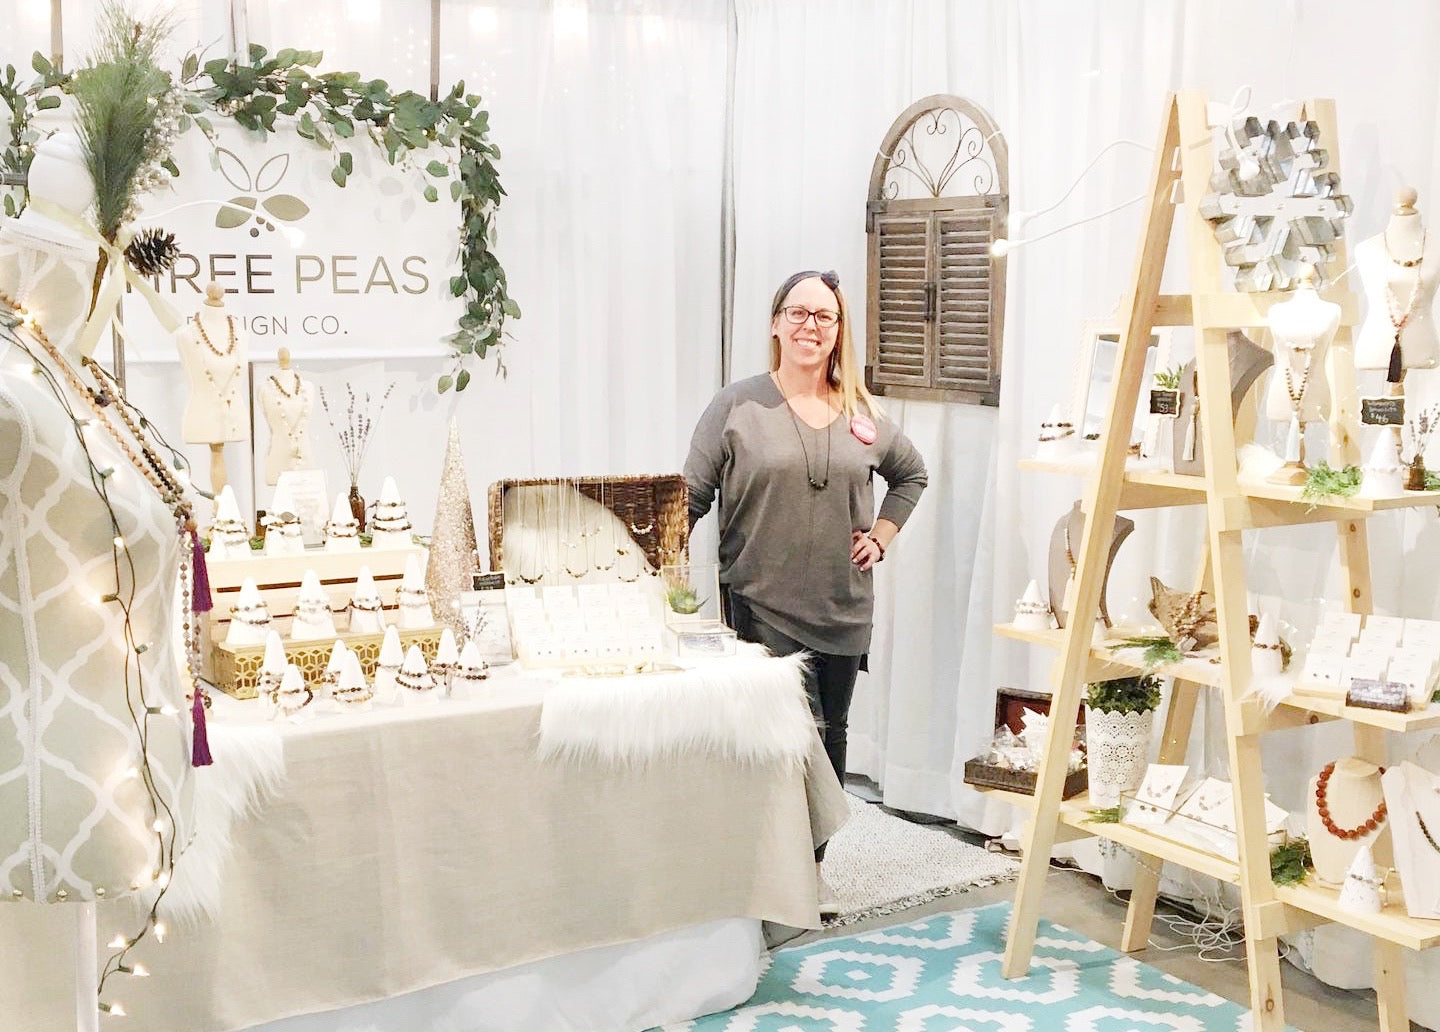 Carrie standing in the middle of her booth display at the Niagara Handmade Market